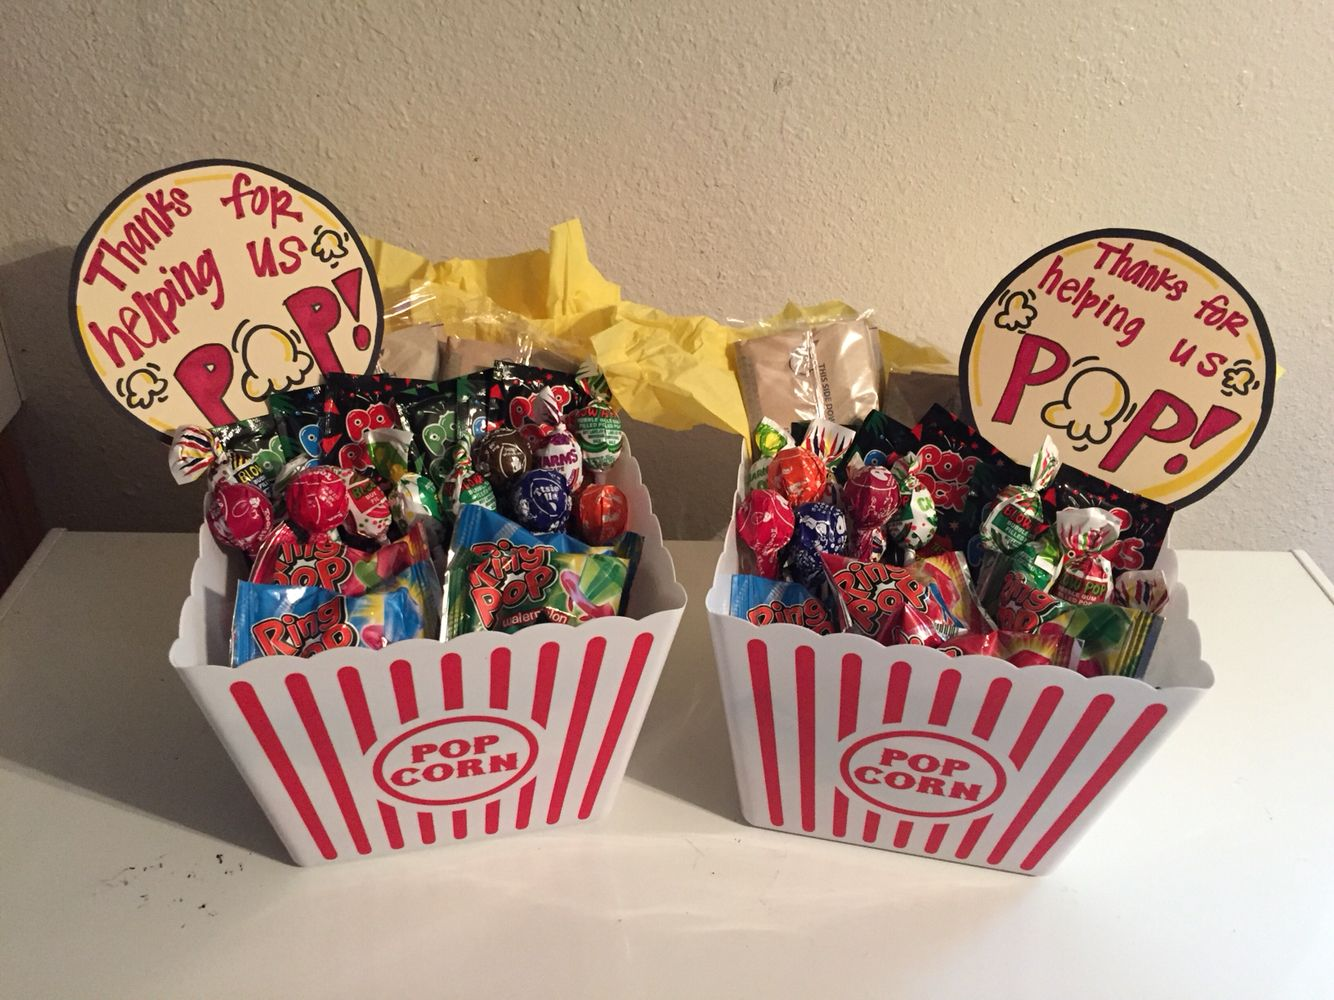 Thanks For Helping Us Pop - Thank You Gift Baskets for Labor and ...